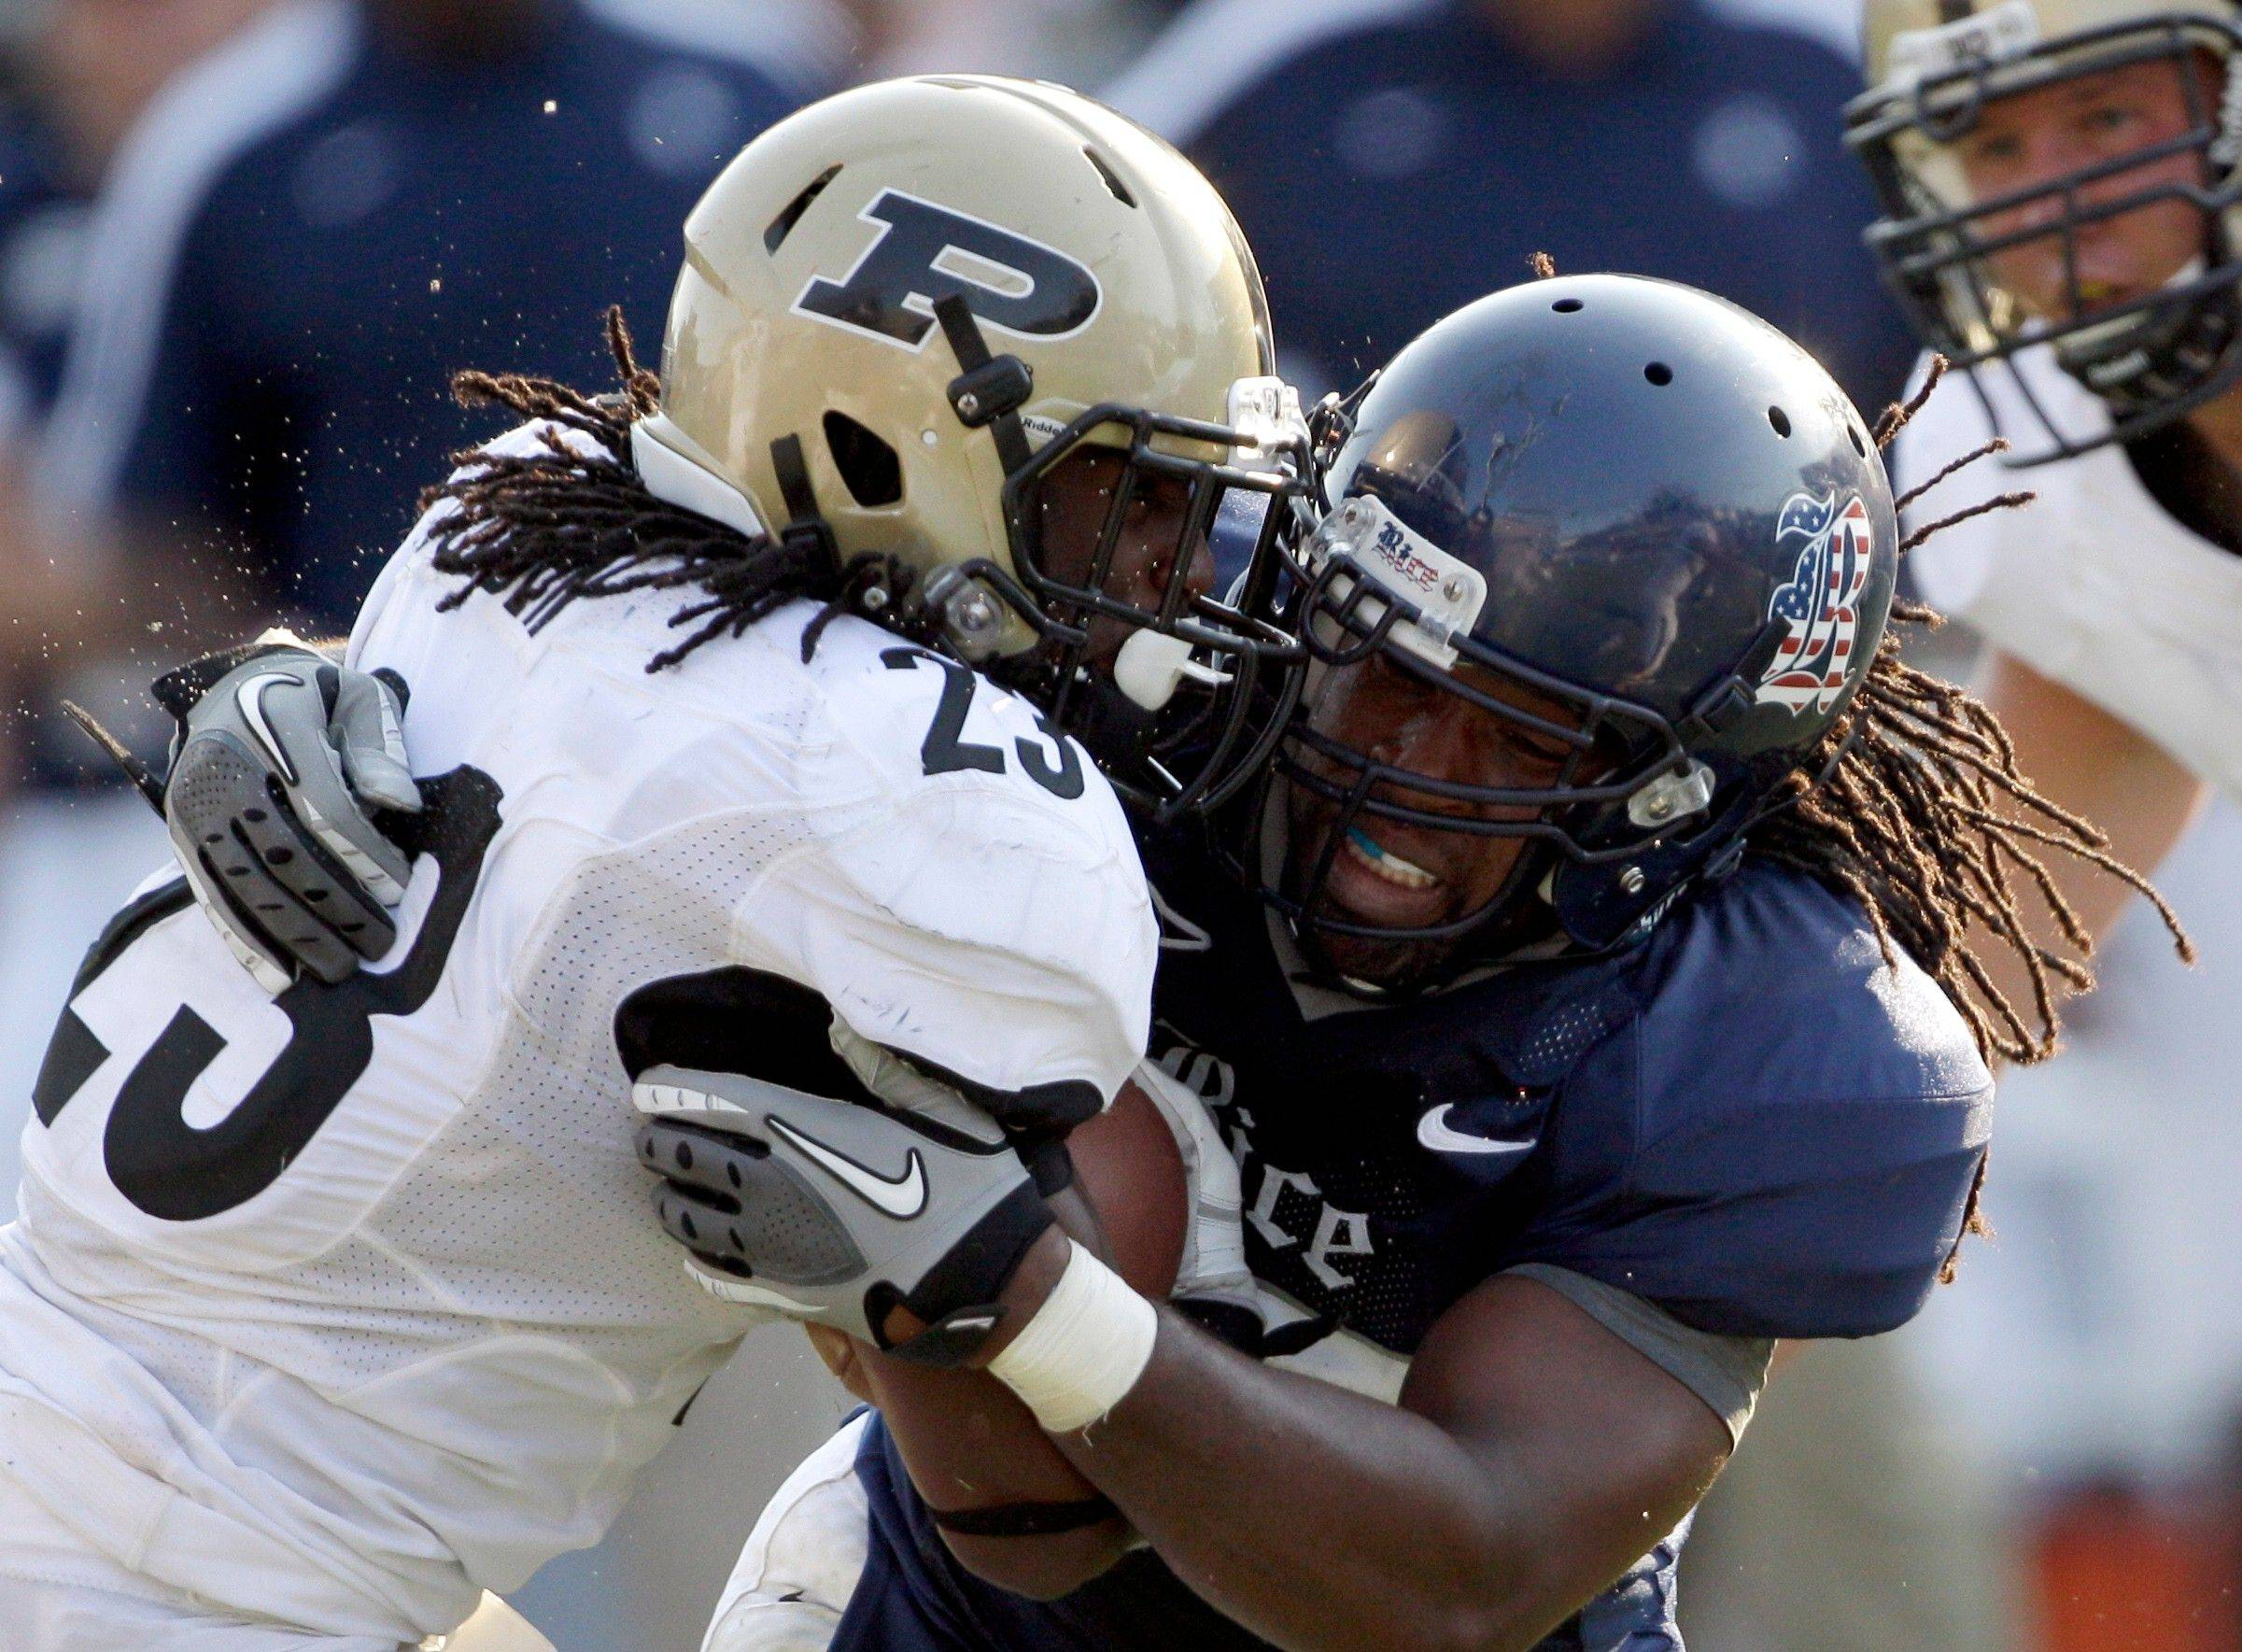 Purdue running back Ralph Bolden (23) is hit by Rice defensive end Jared Williams, right, during the fourth quarter Saturday. Rice won 24-22.